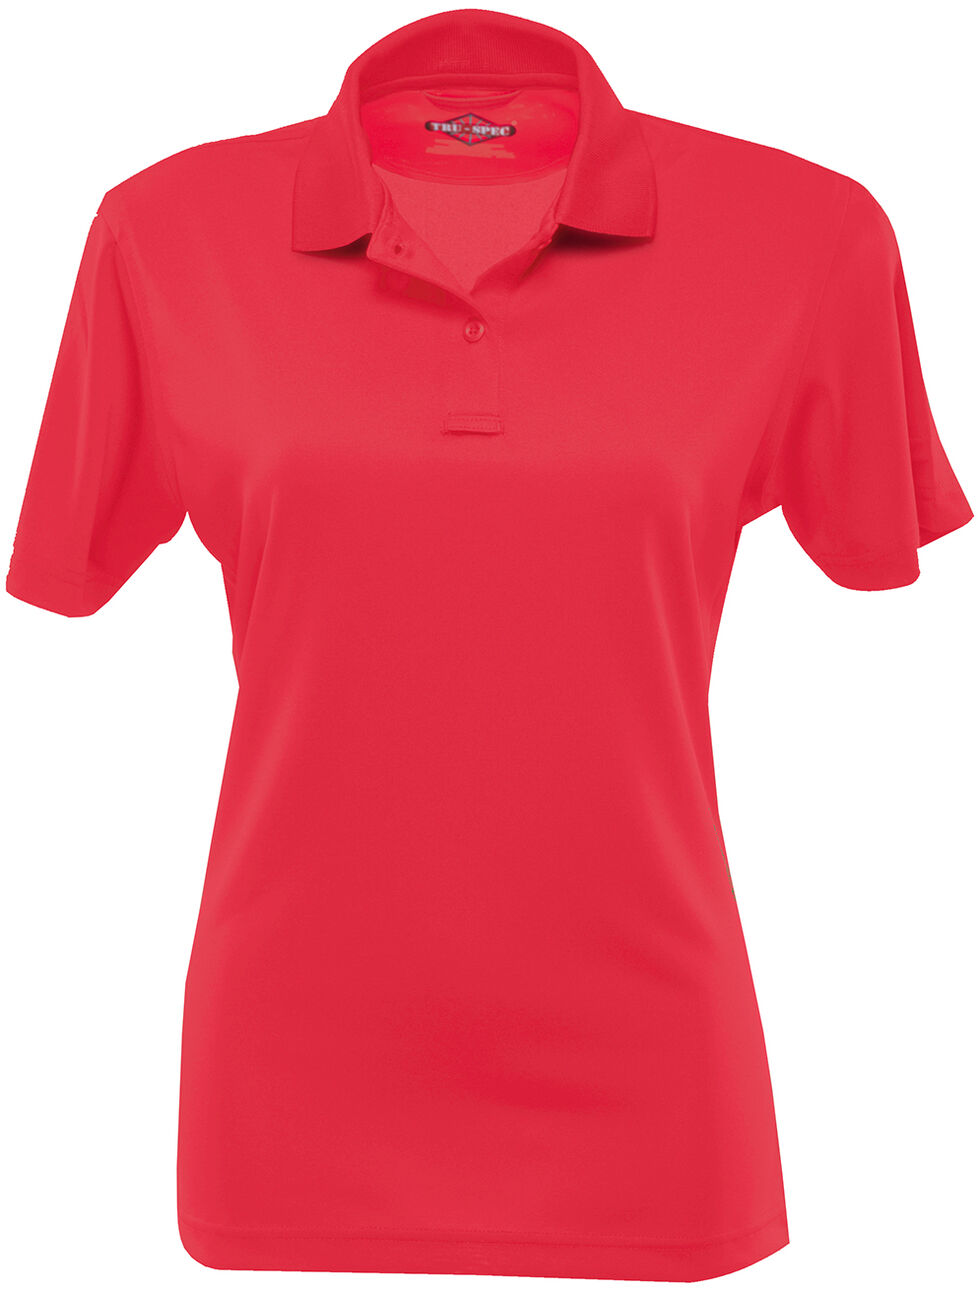 Tru-Spec Women's 24-7 Series Performance Polo Shirt, Red, hi-res